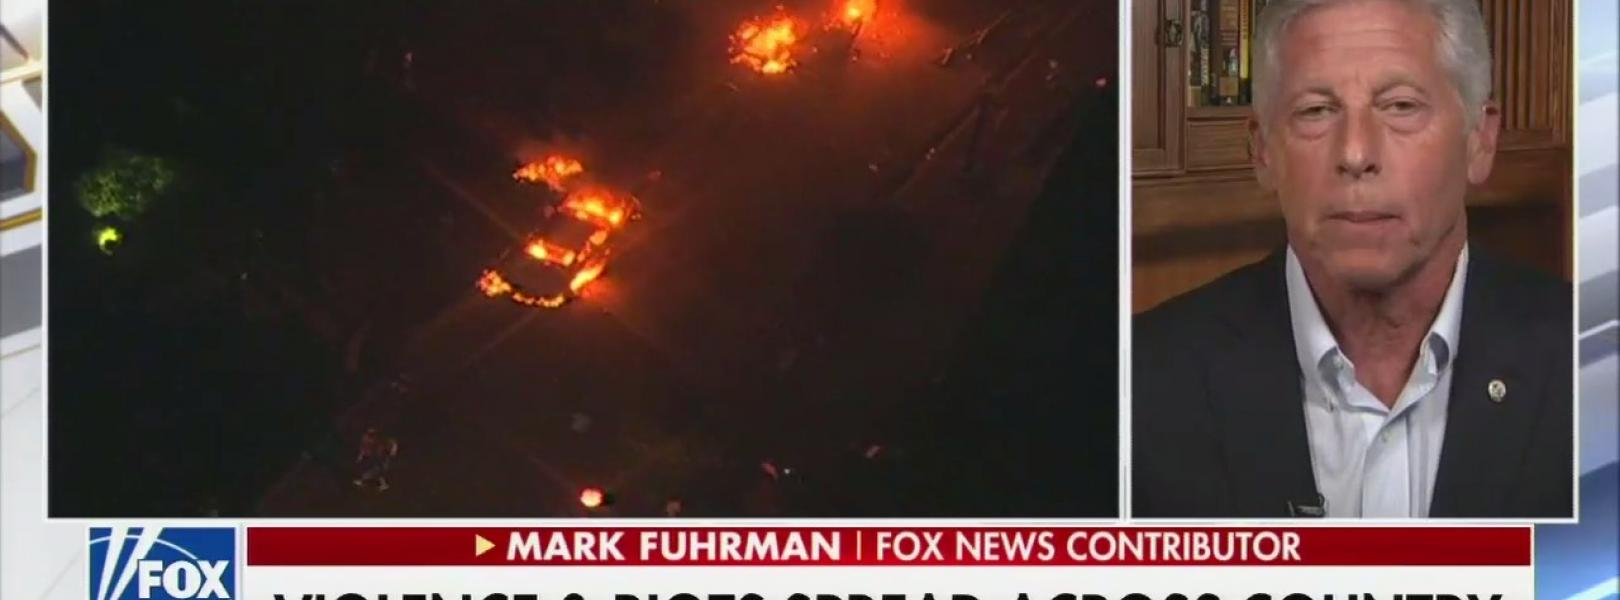 Fox News hosts Mark Fuhrman to analyze George Floyd protests